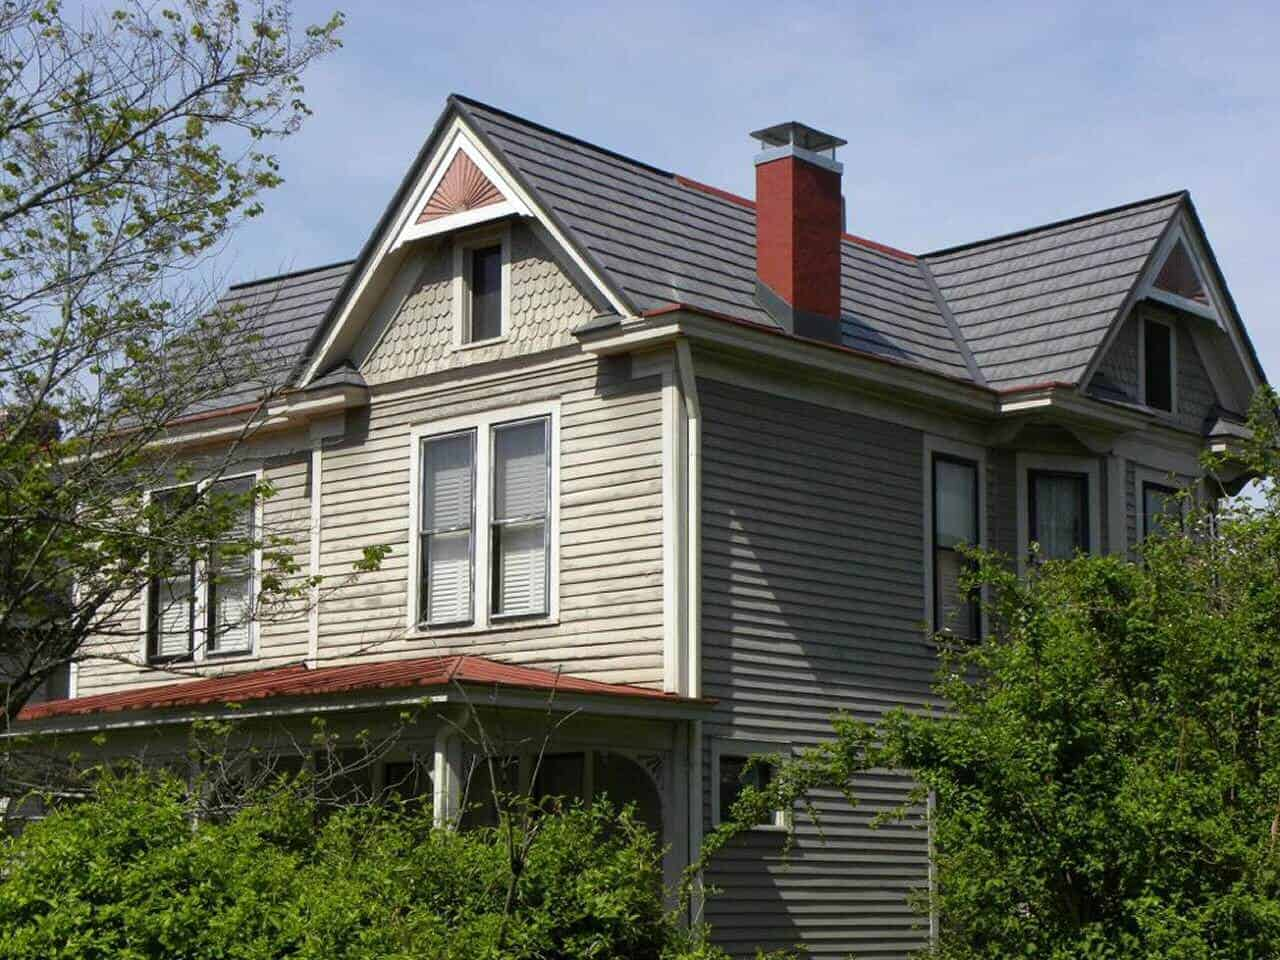 Pearland TX metal roofing prices